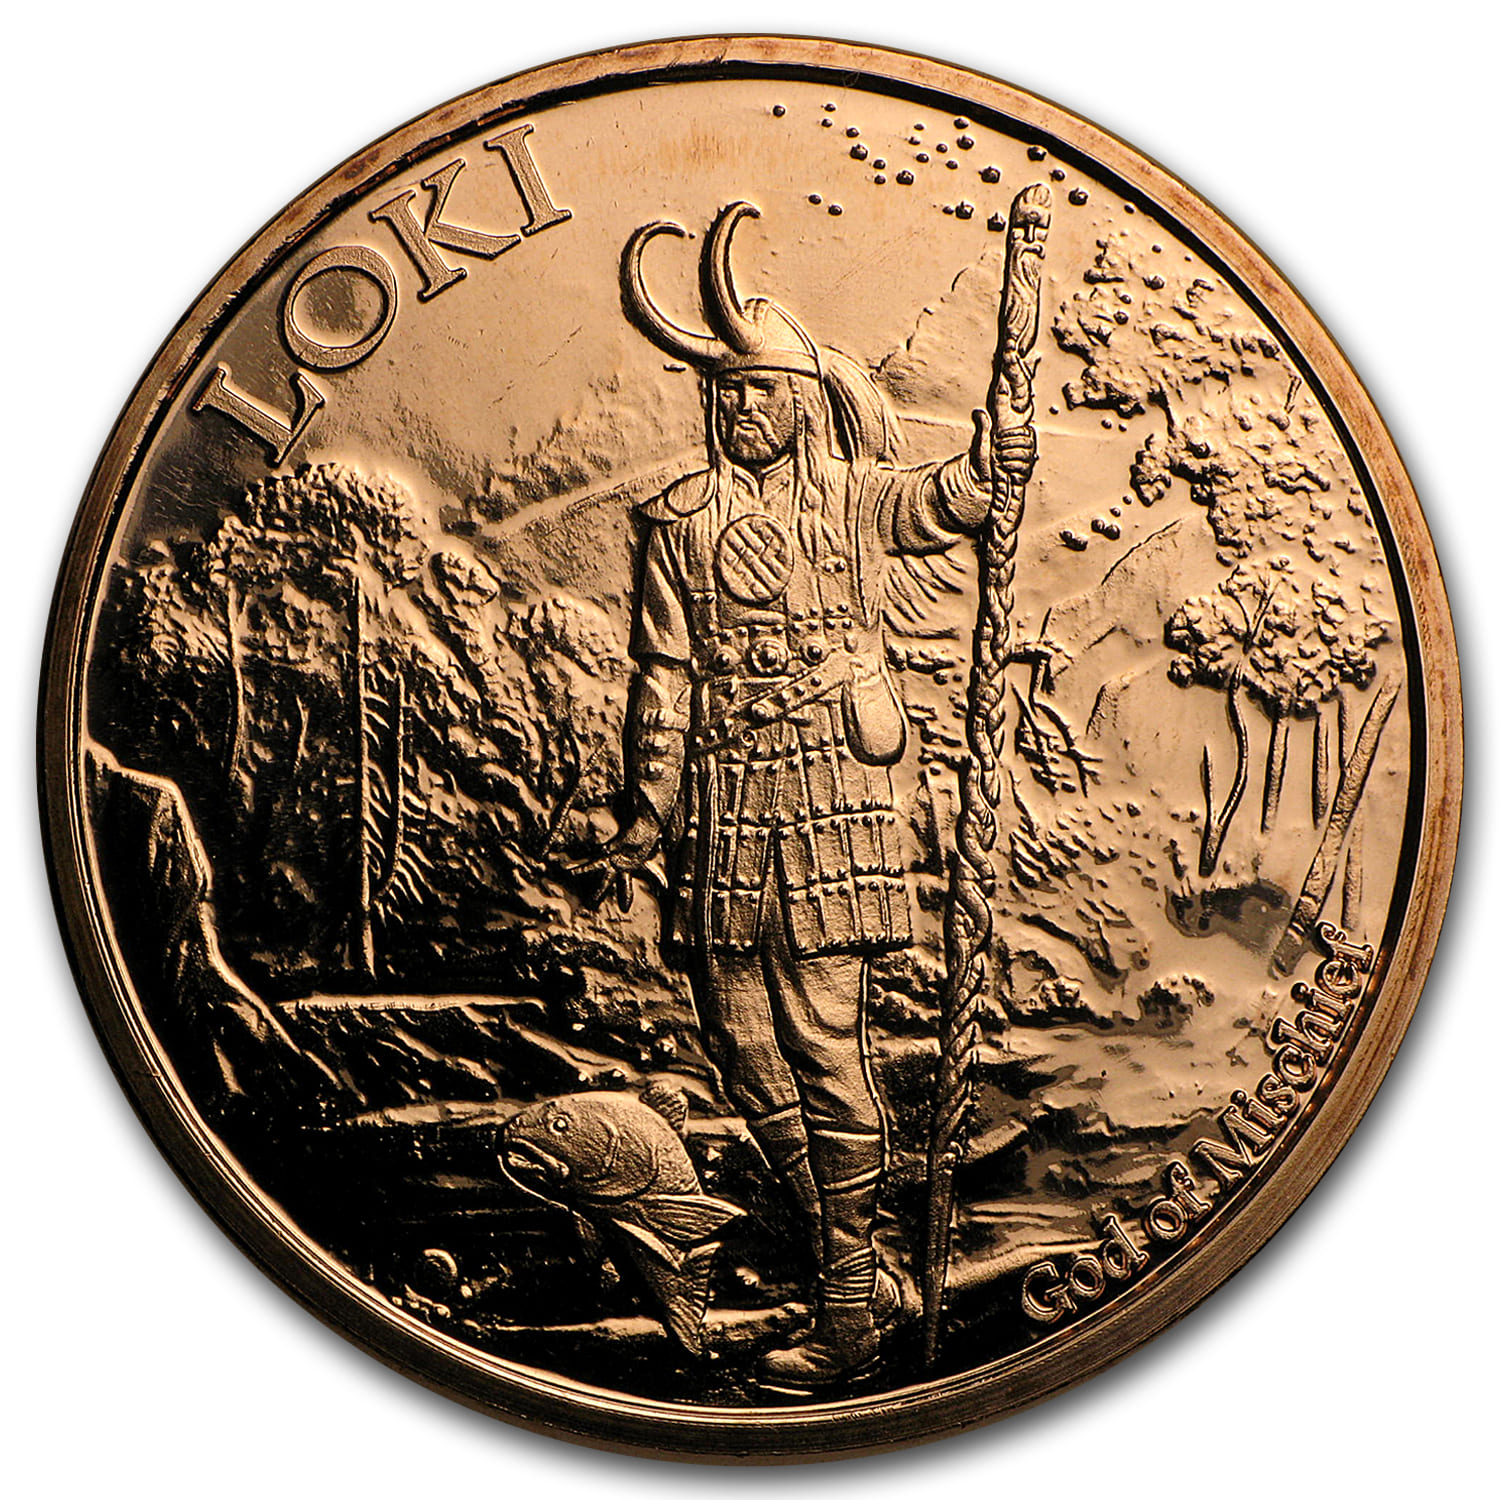 1 oz Copper Round - Loki God of Mischief (Anonymous Mint)